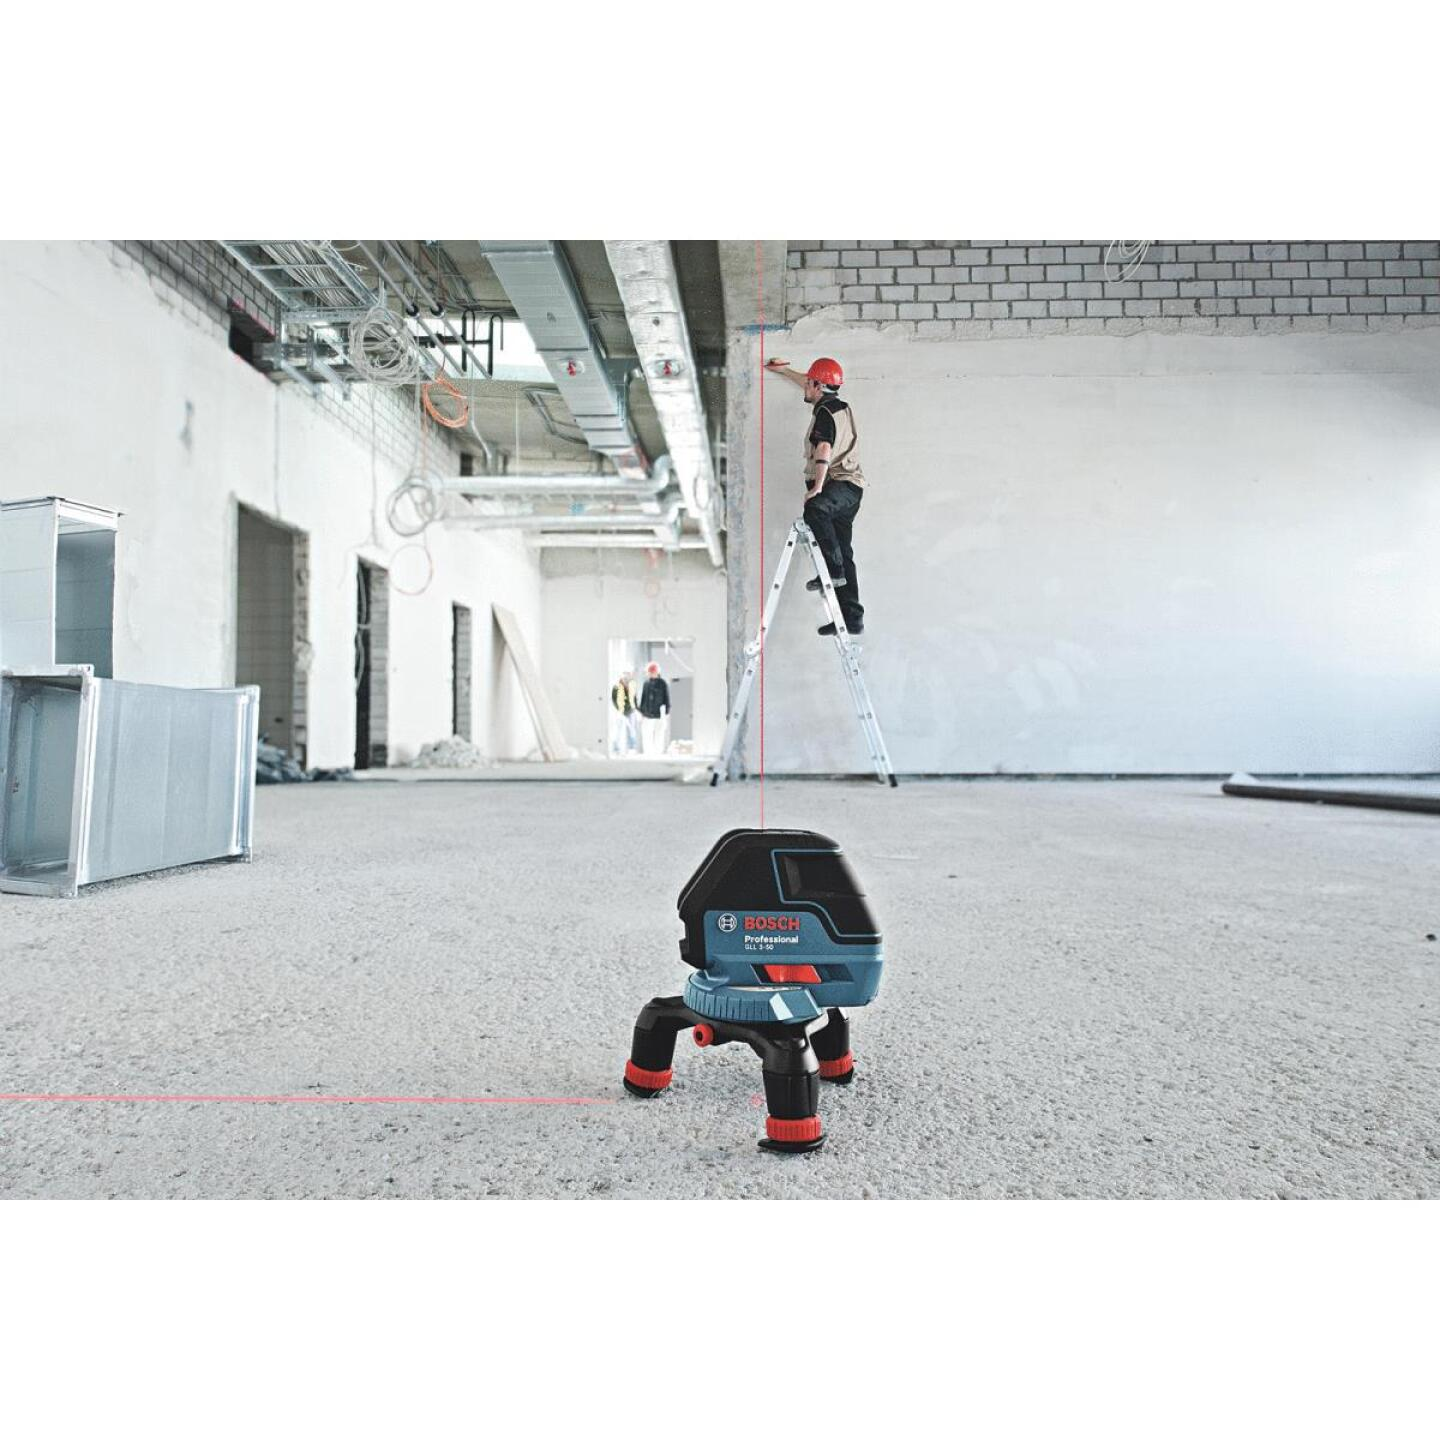 Bosch 165 Ft. Self-Leveling 360 Degree 3-Plane and Alignment Line Laser Level with Layout Beam Image 2